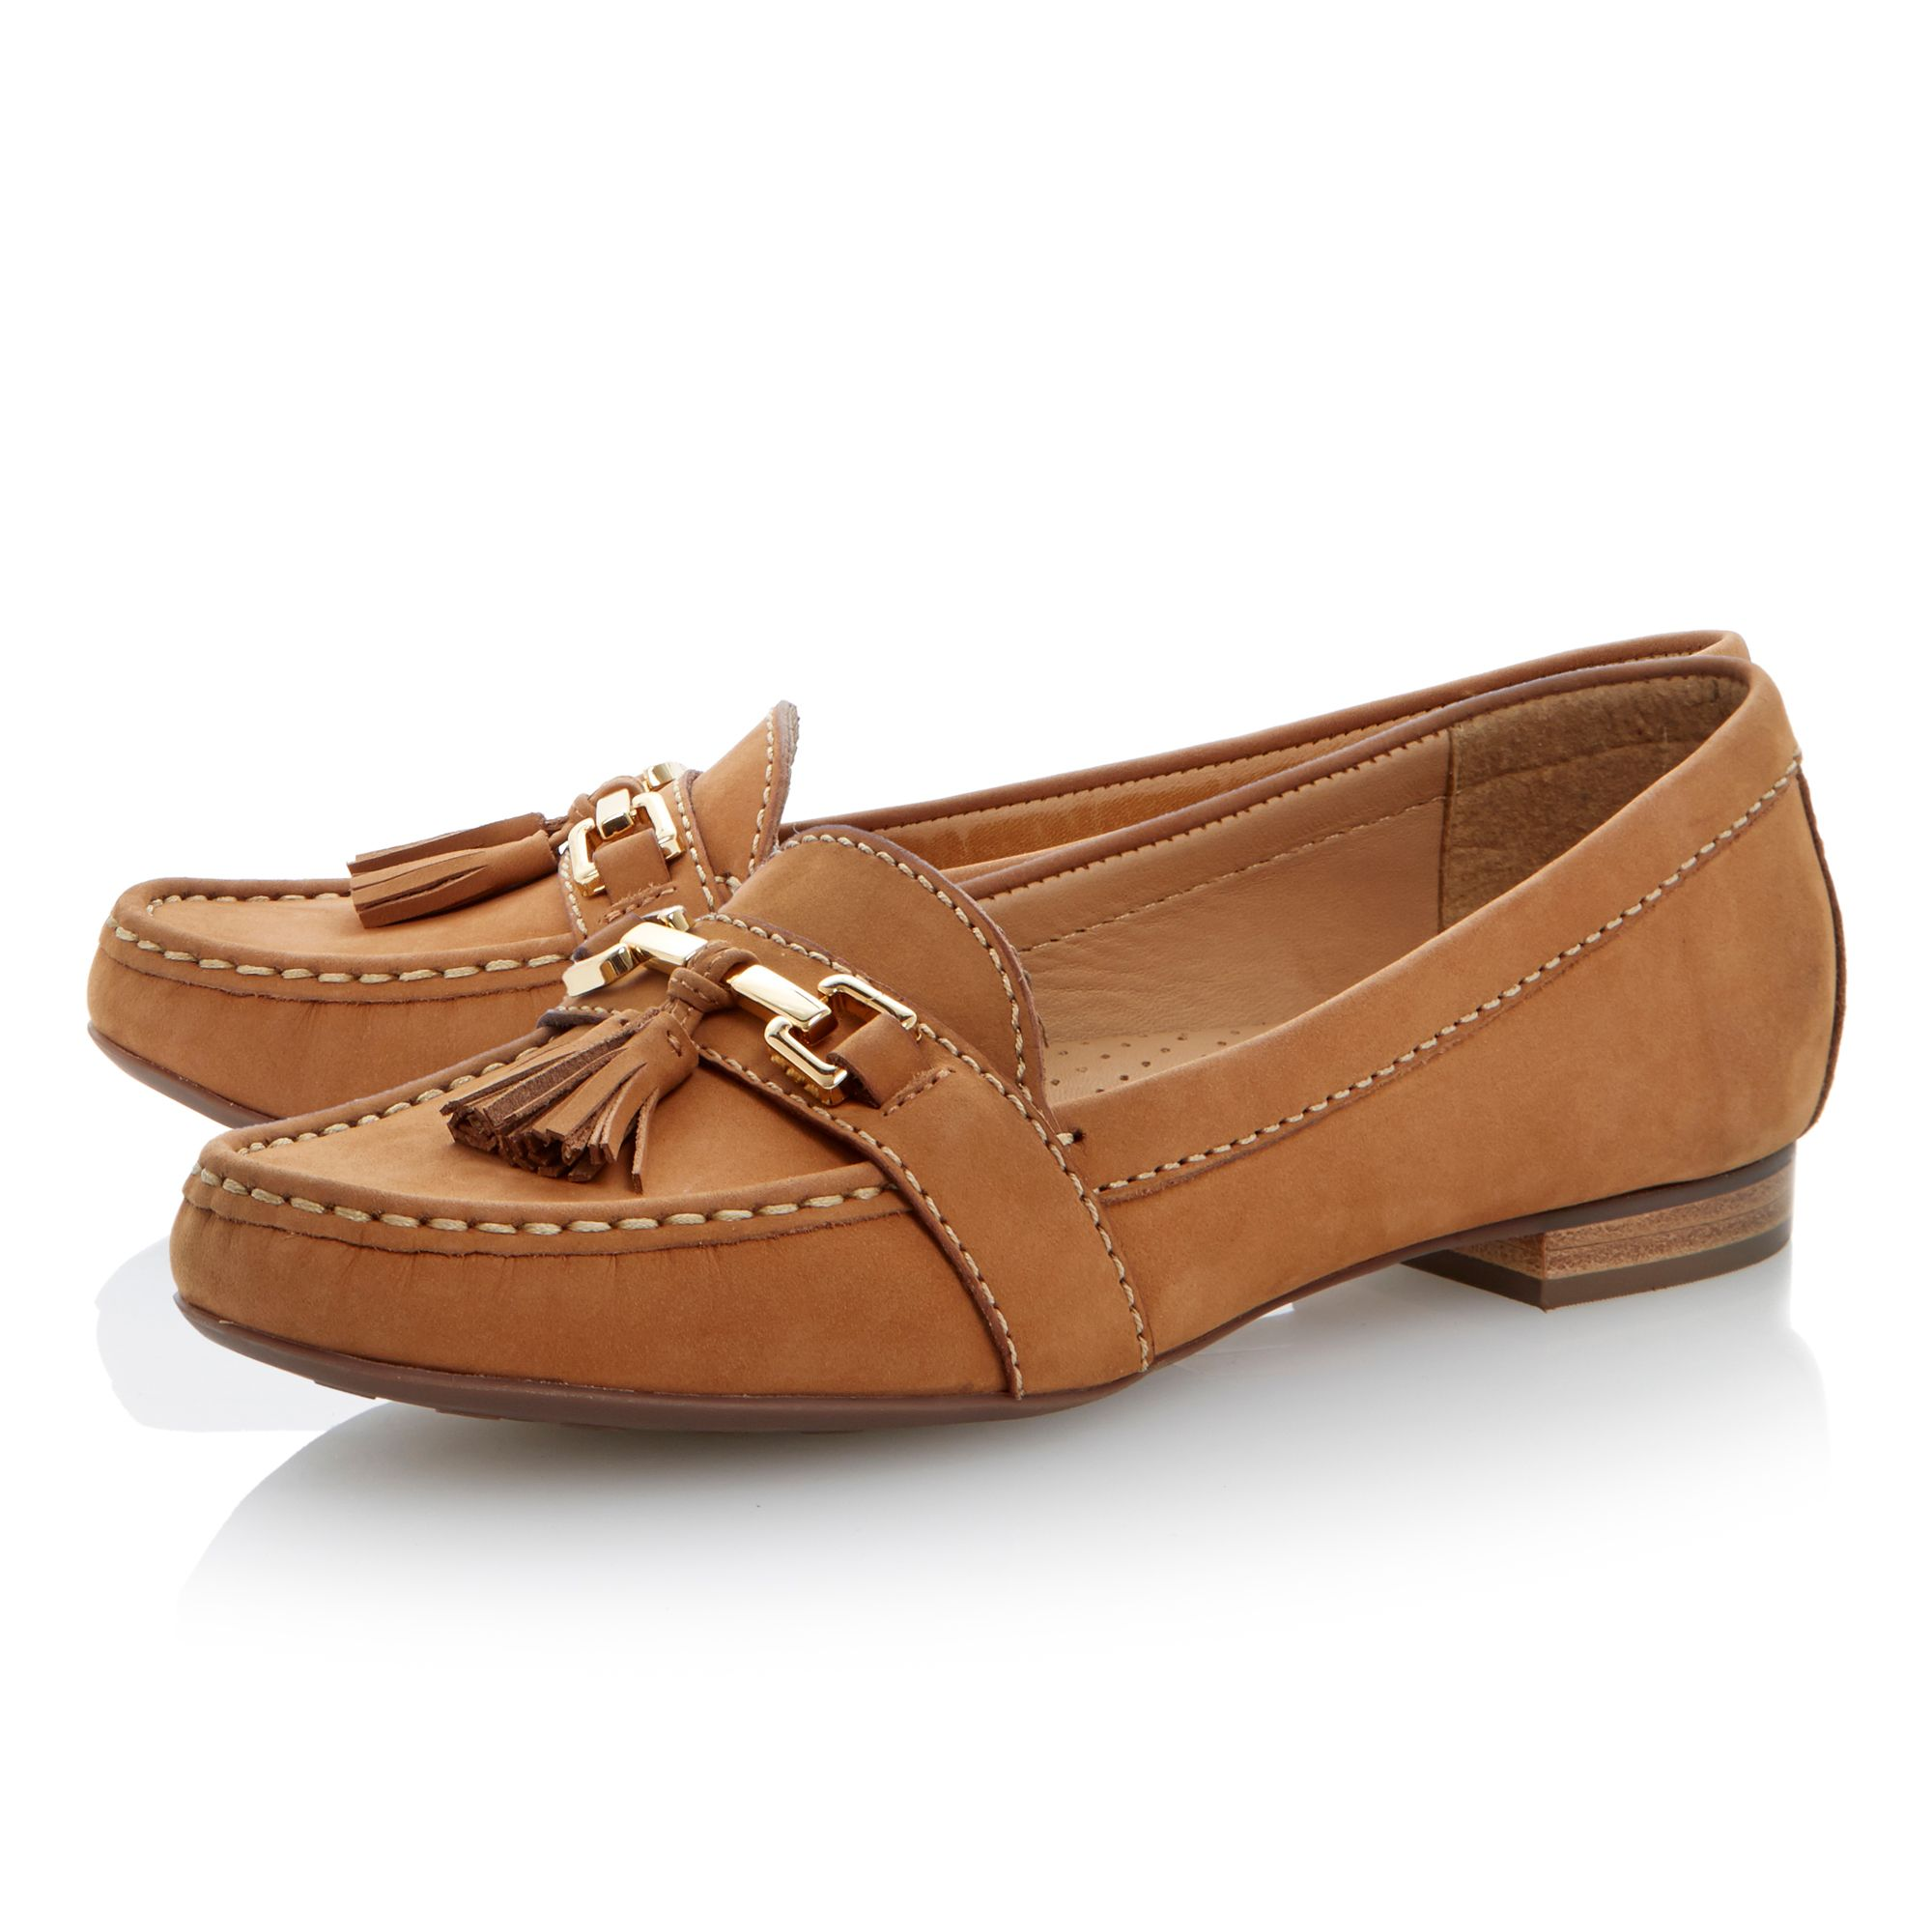 Luminous leather flat loafer shoes